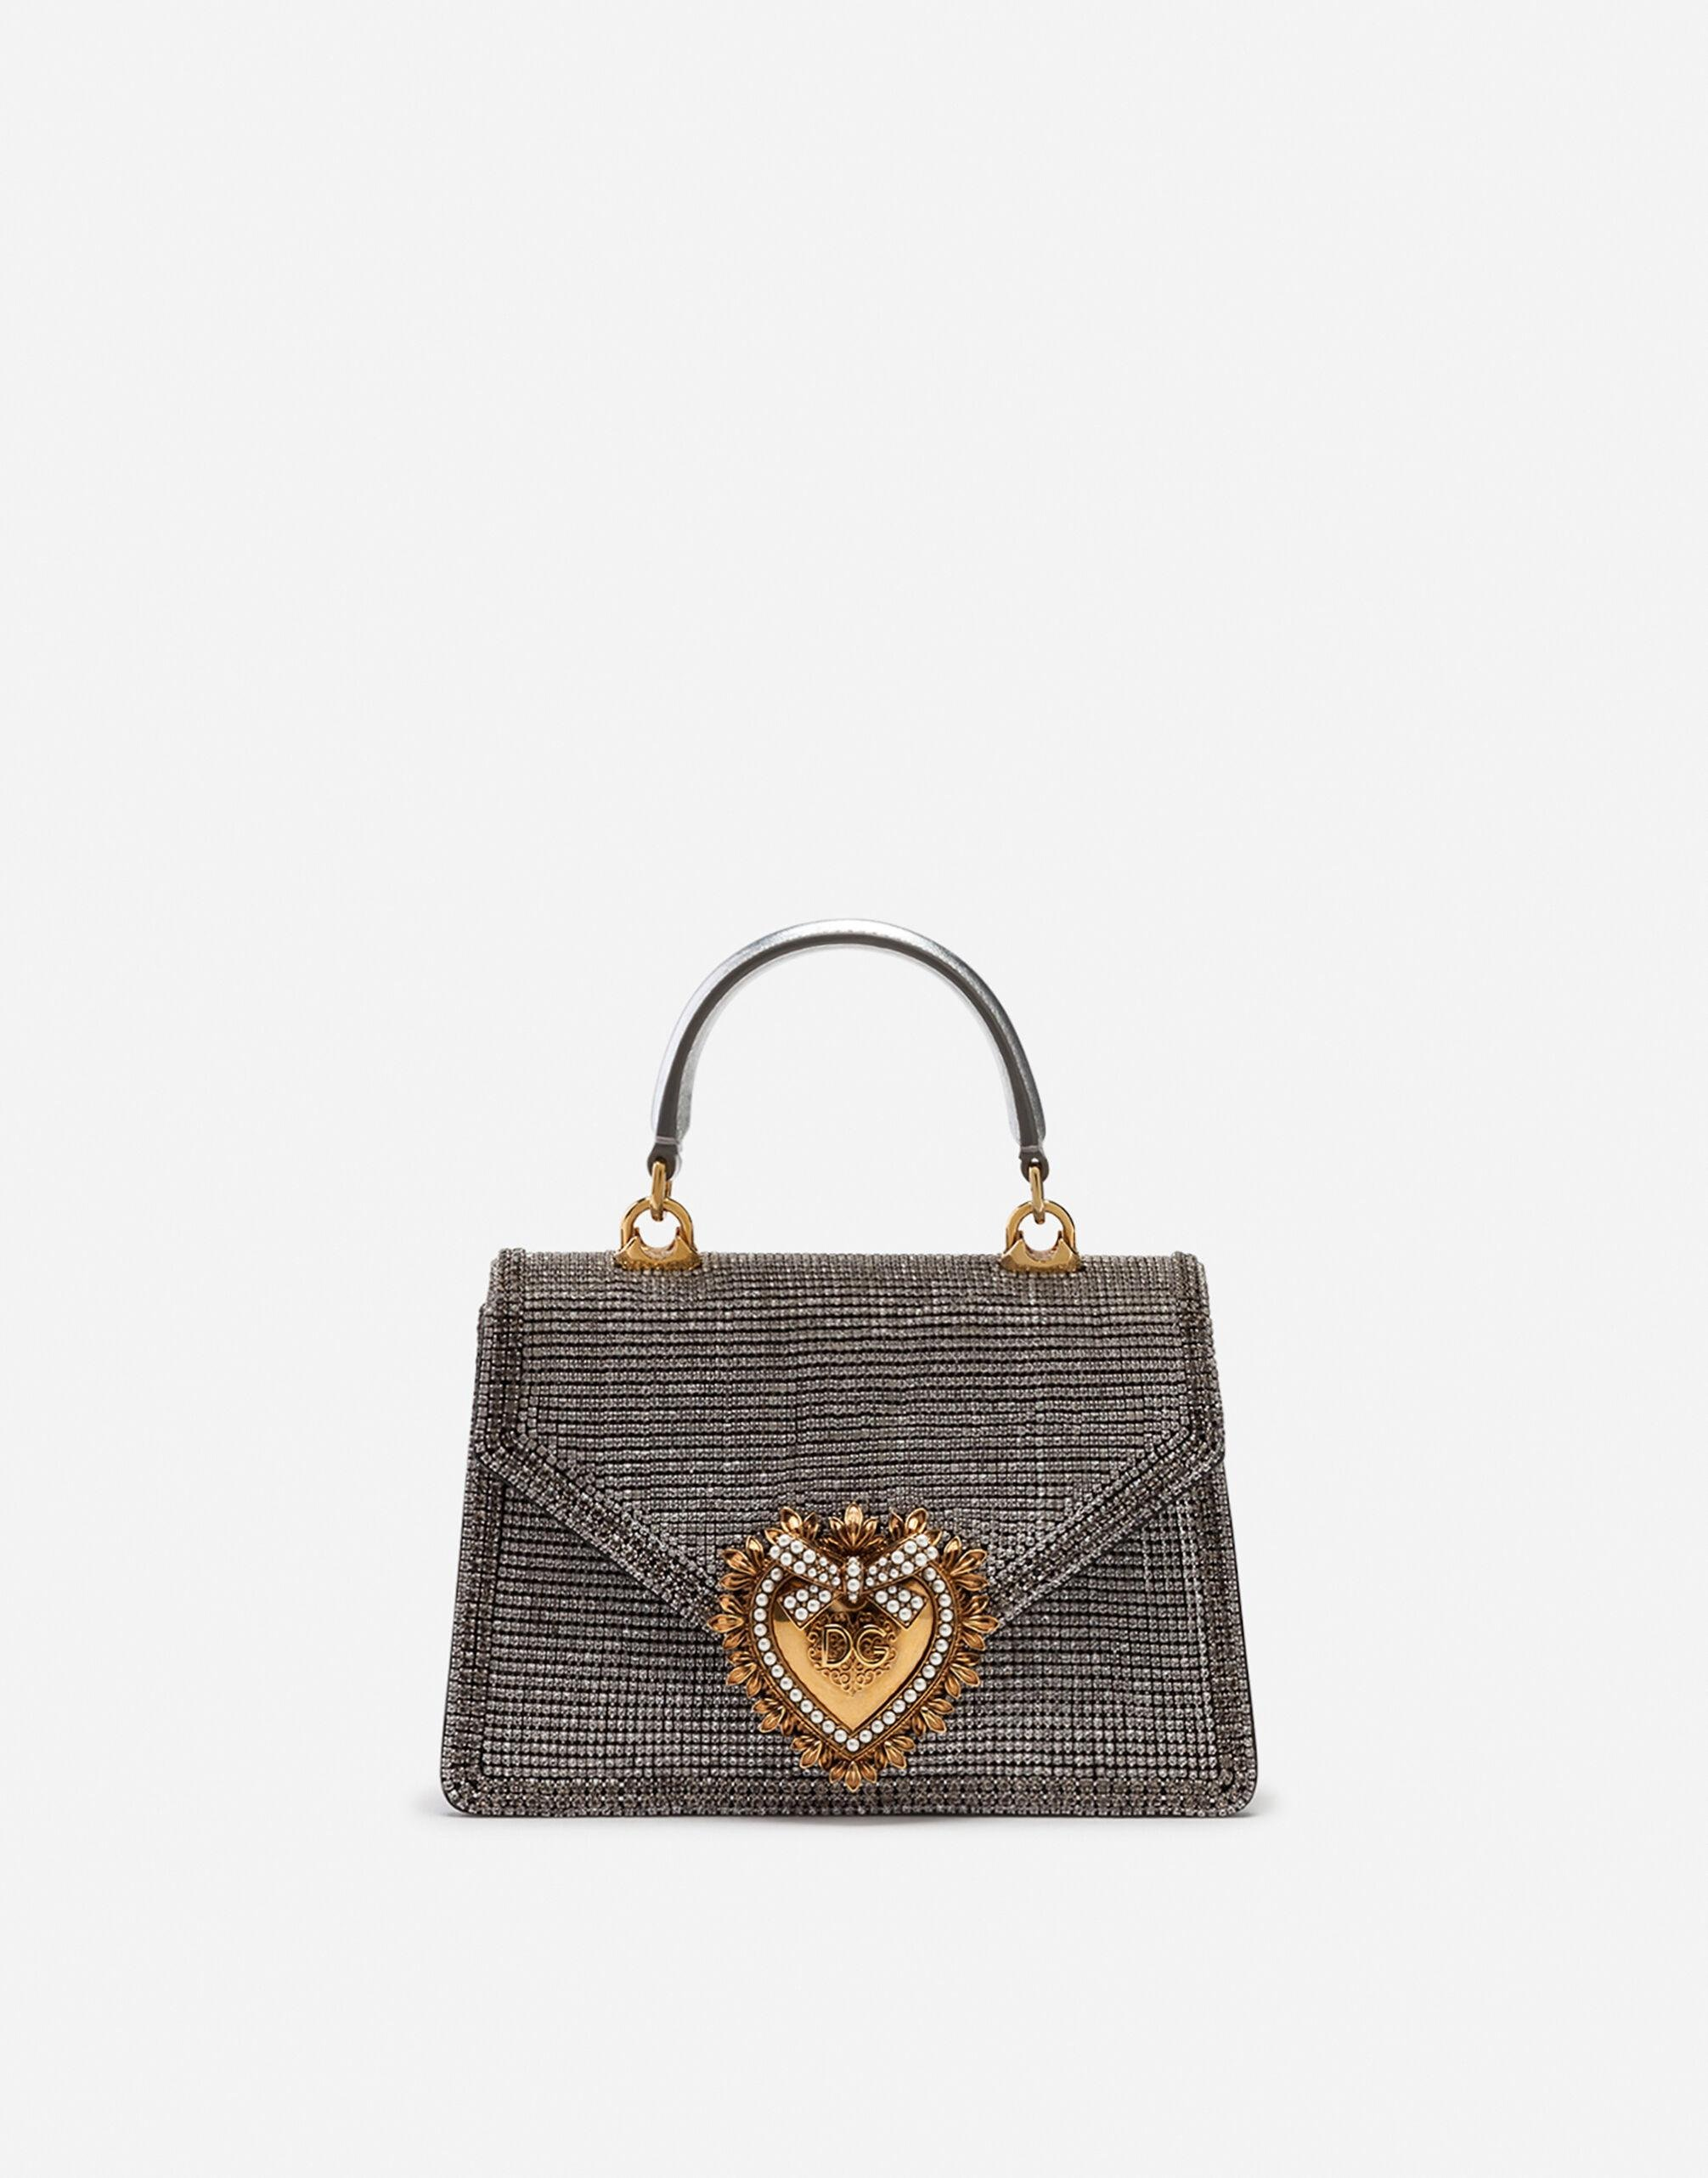 Small Devotion bag in mordore nappa leather with rhinestone detailing